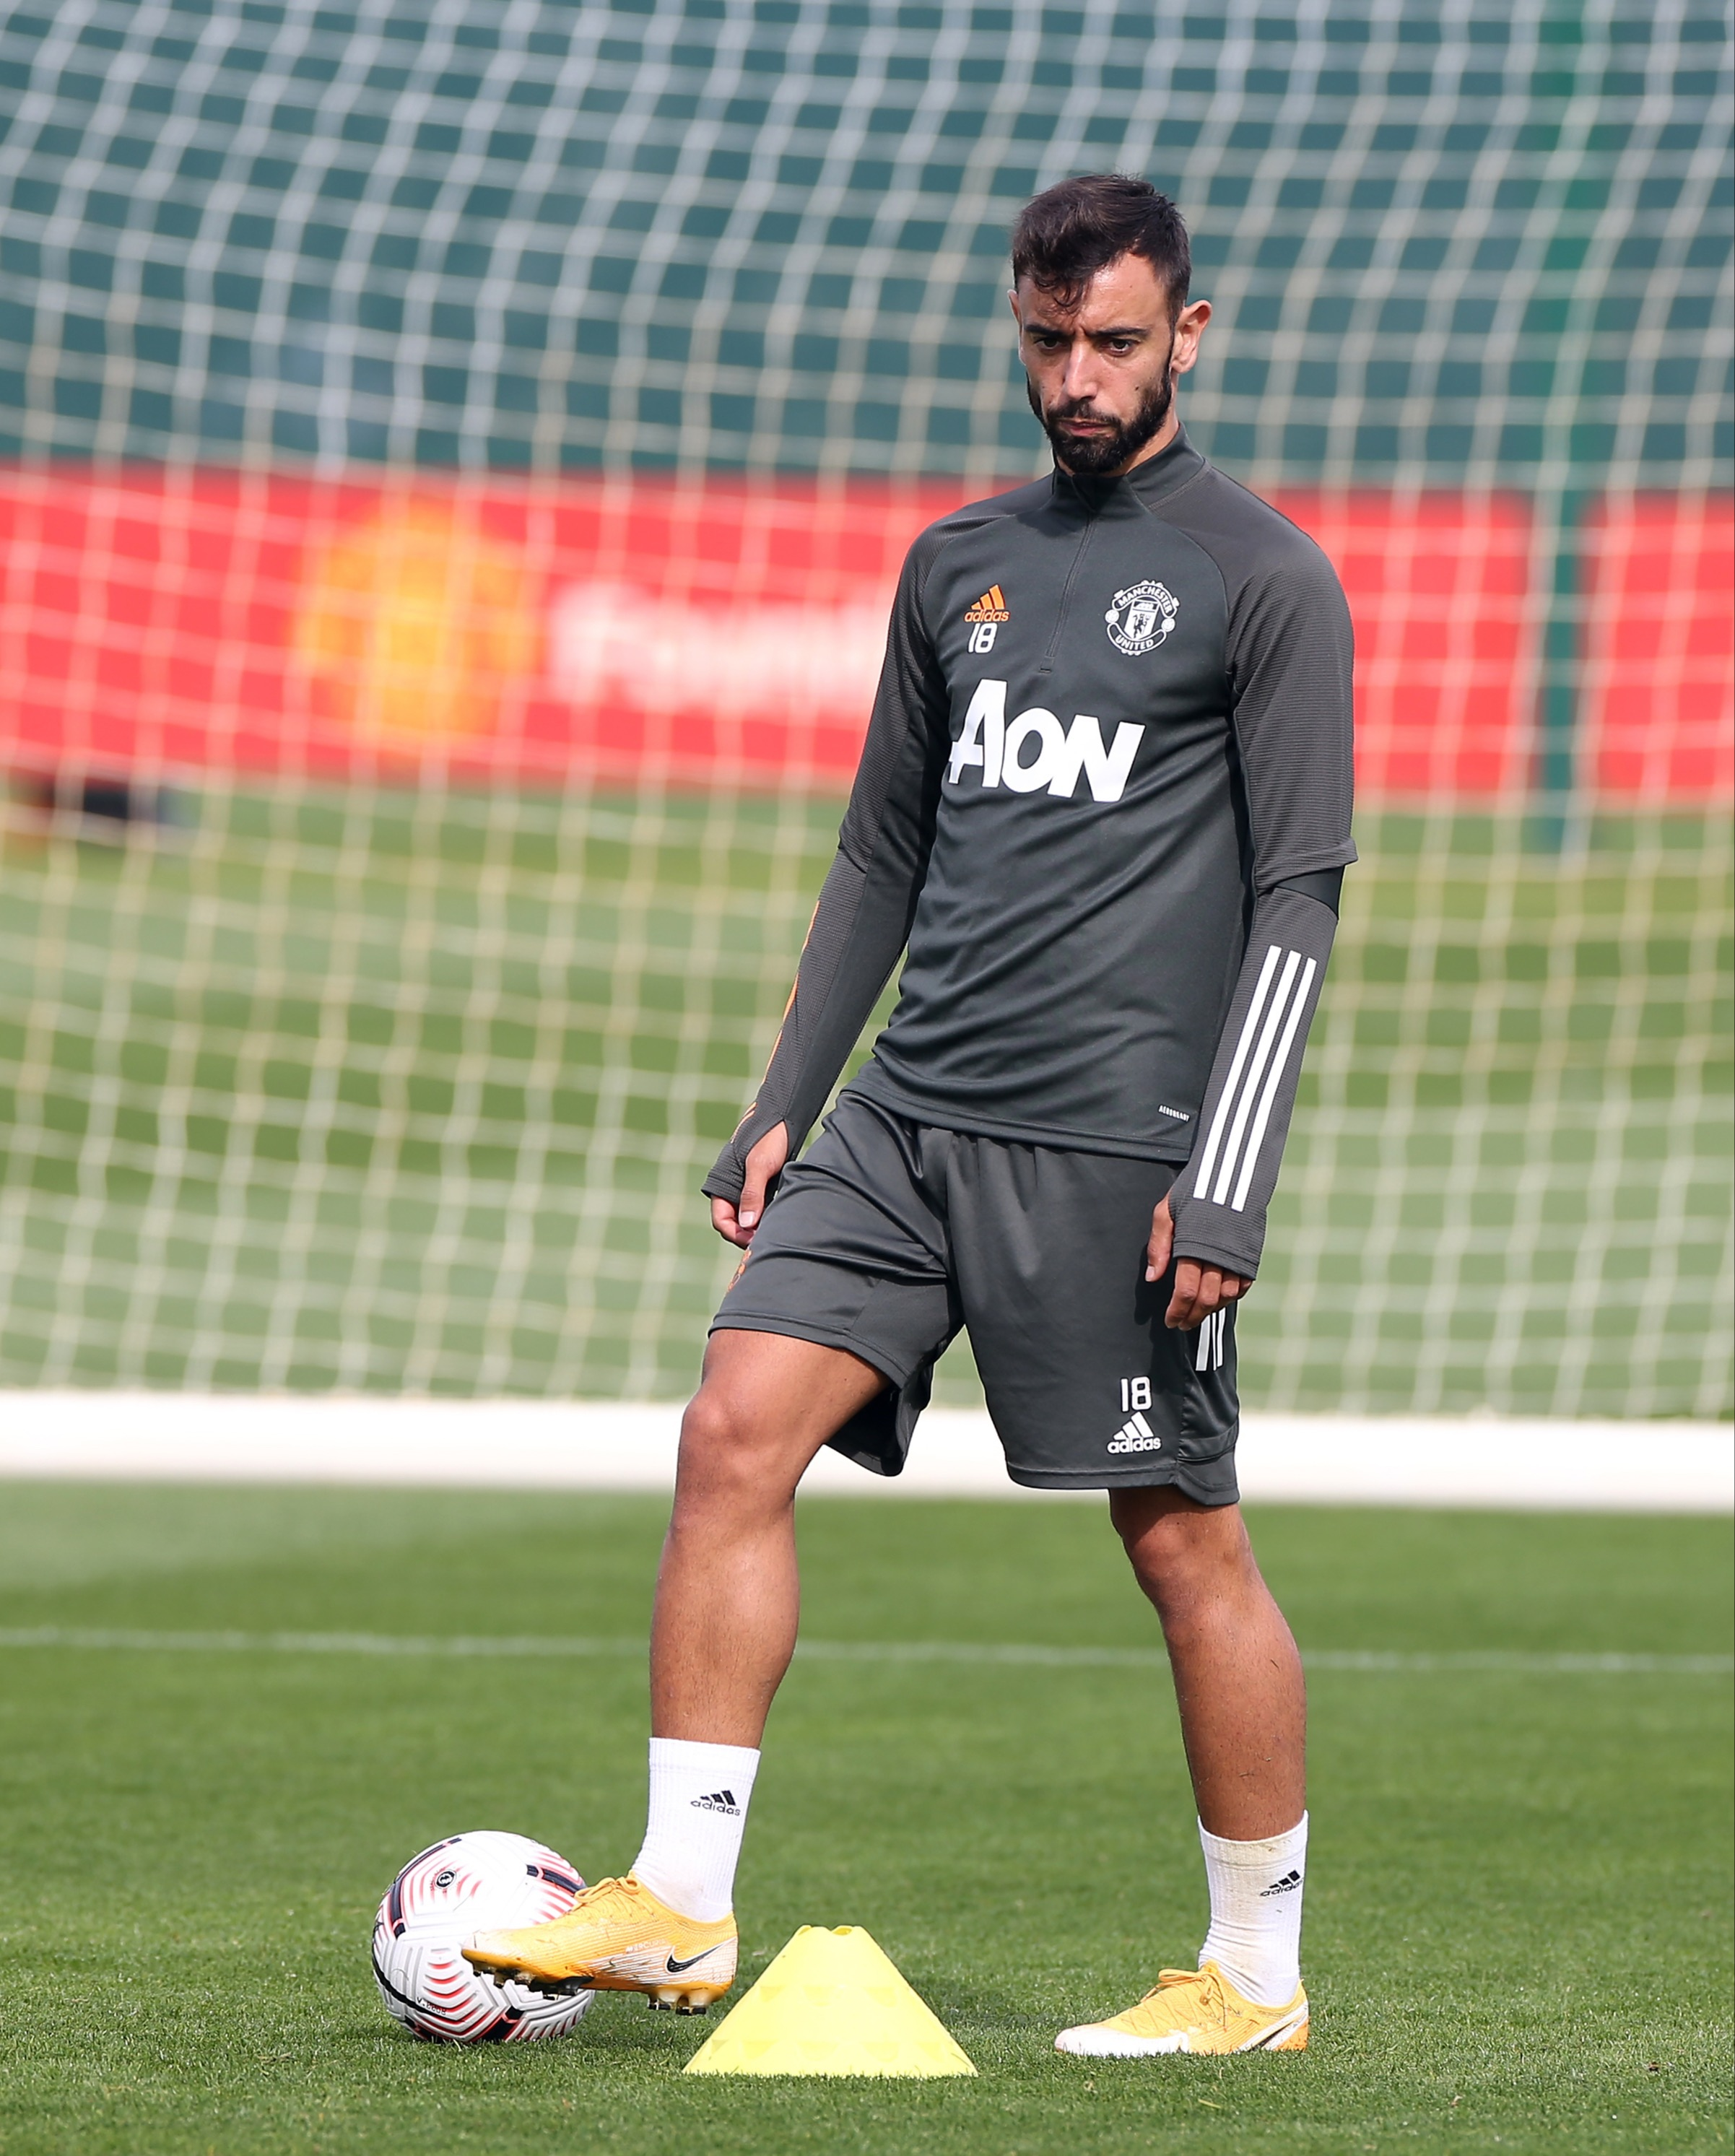 Man Utd sources think Bruno Fernandes is 'getting too big for his boots' after dressing room rant and Spanish links